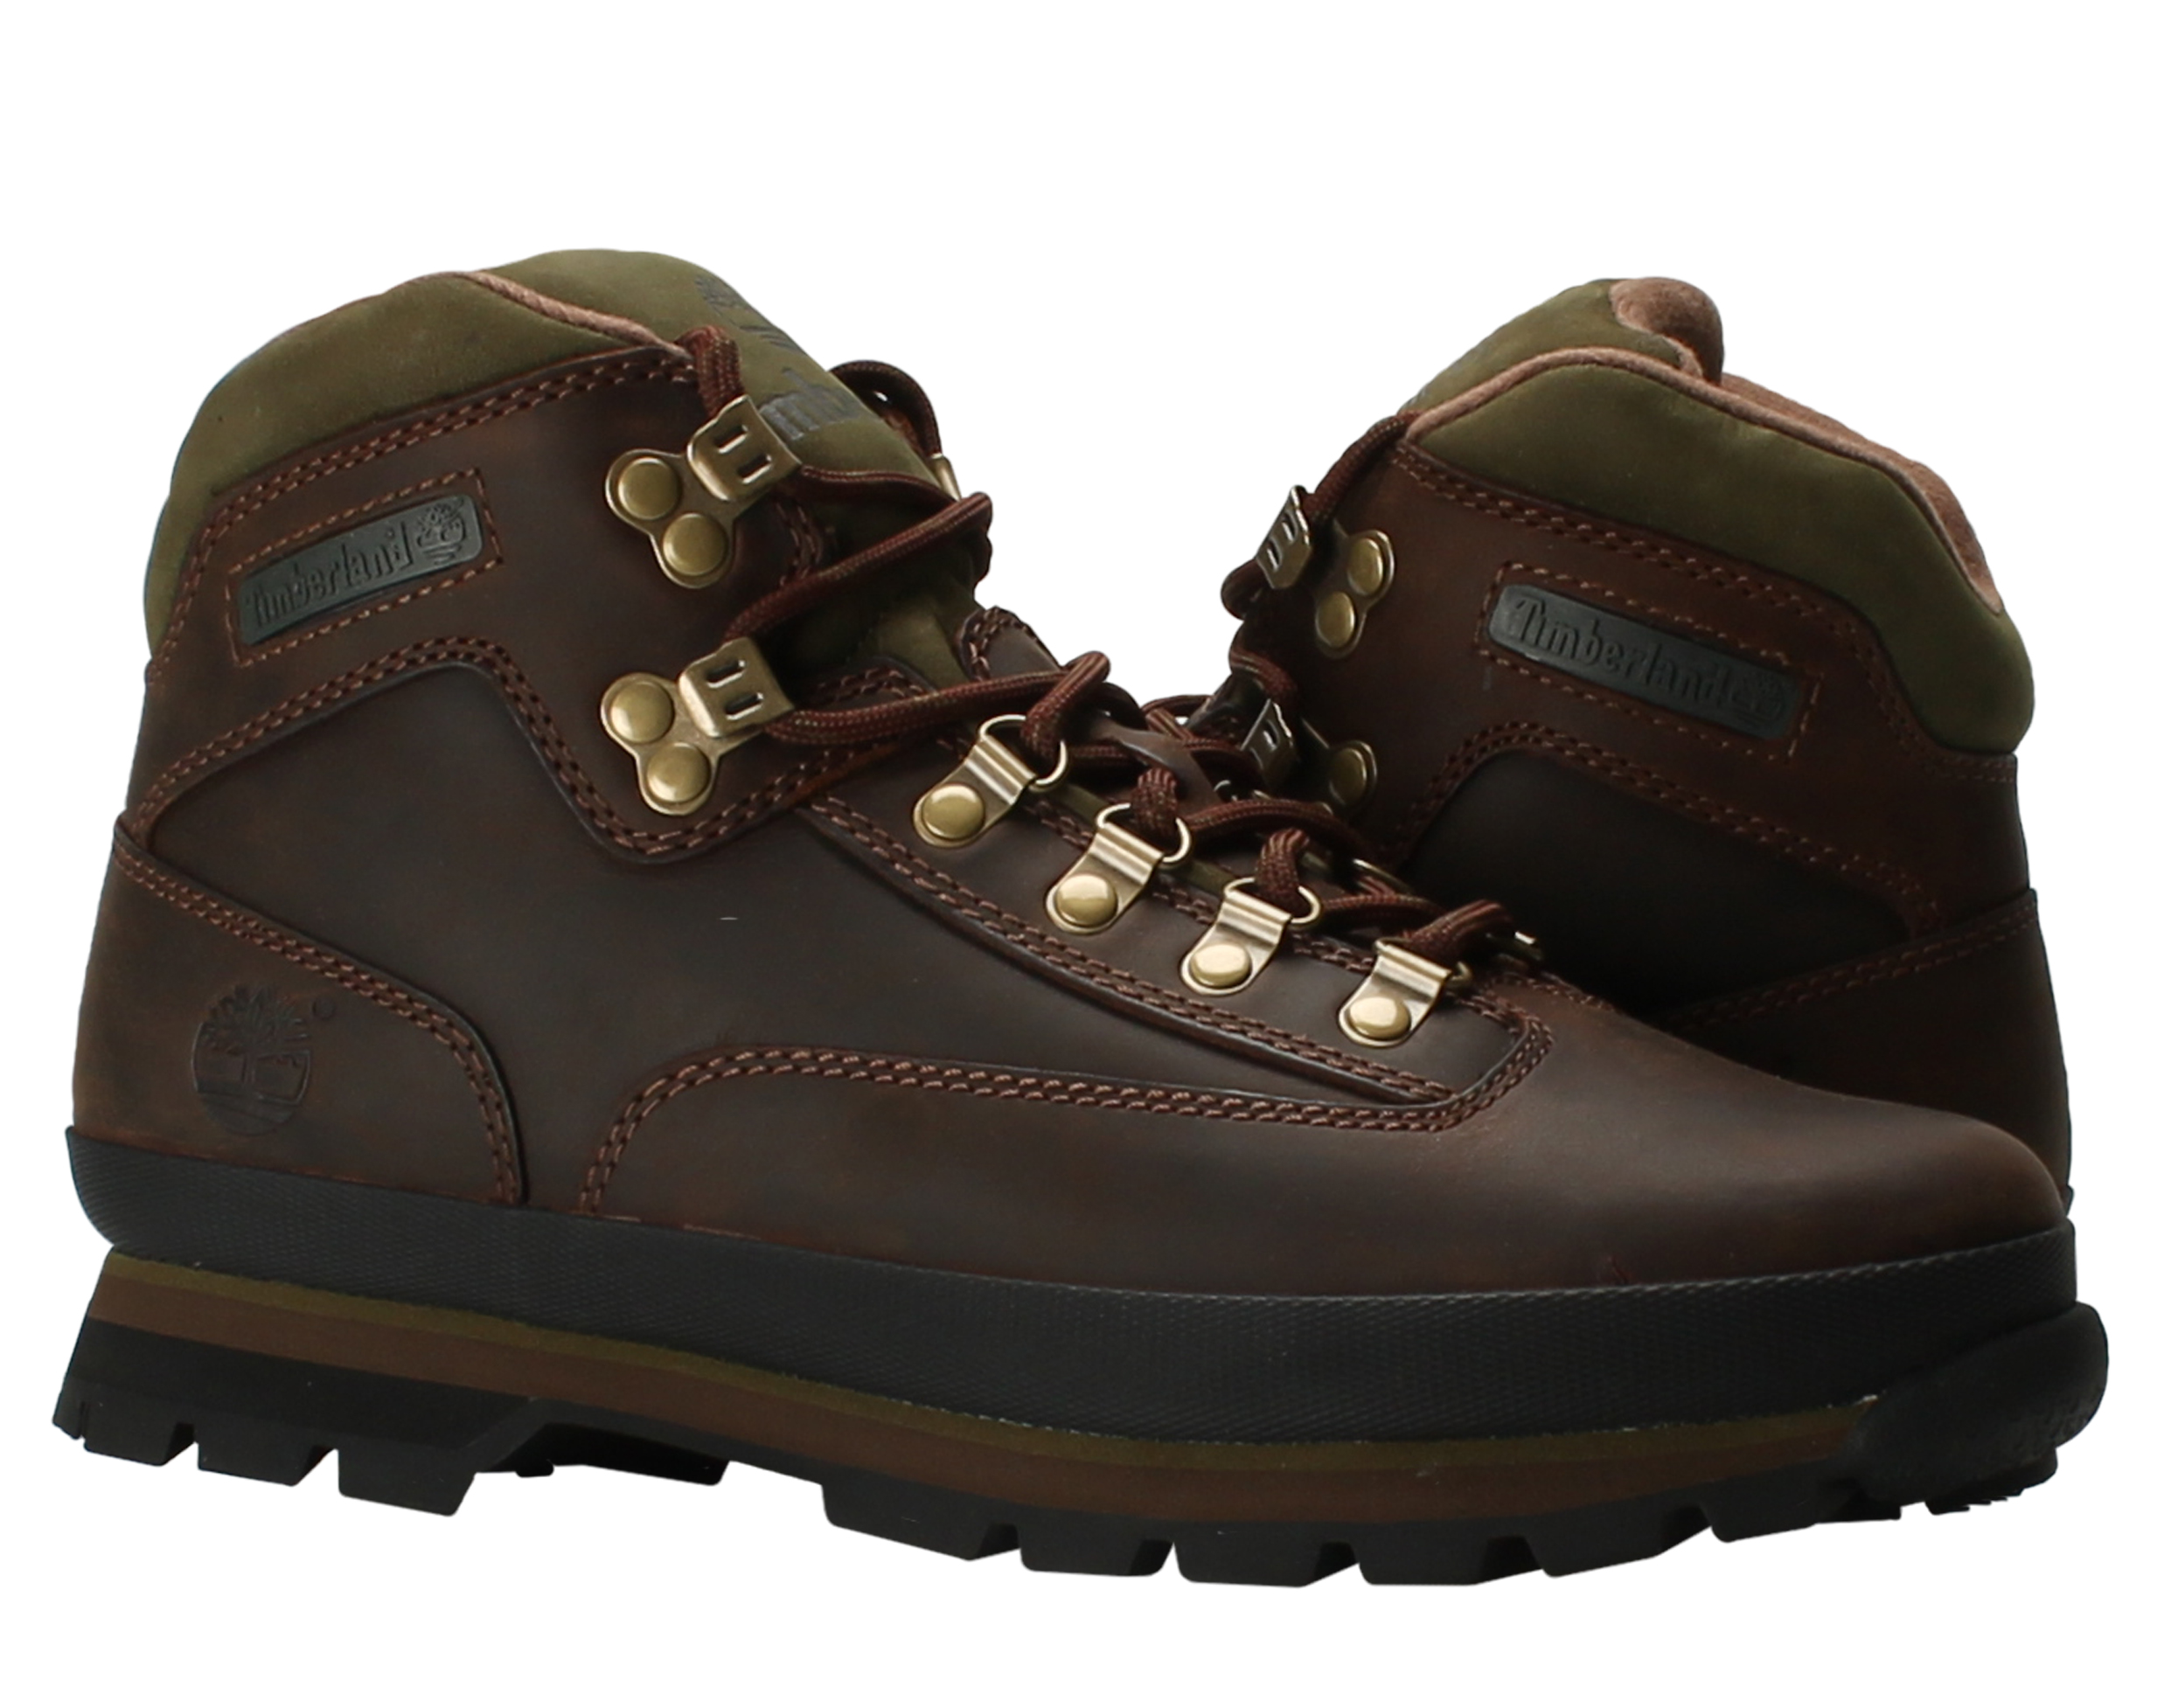 Timberland Euro Hiker Oiled Leather Brown Men's Boots [95100] by Timberland